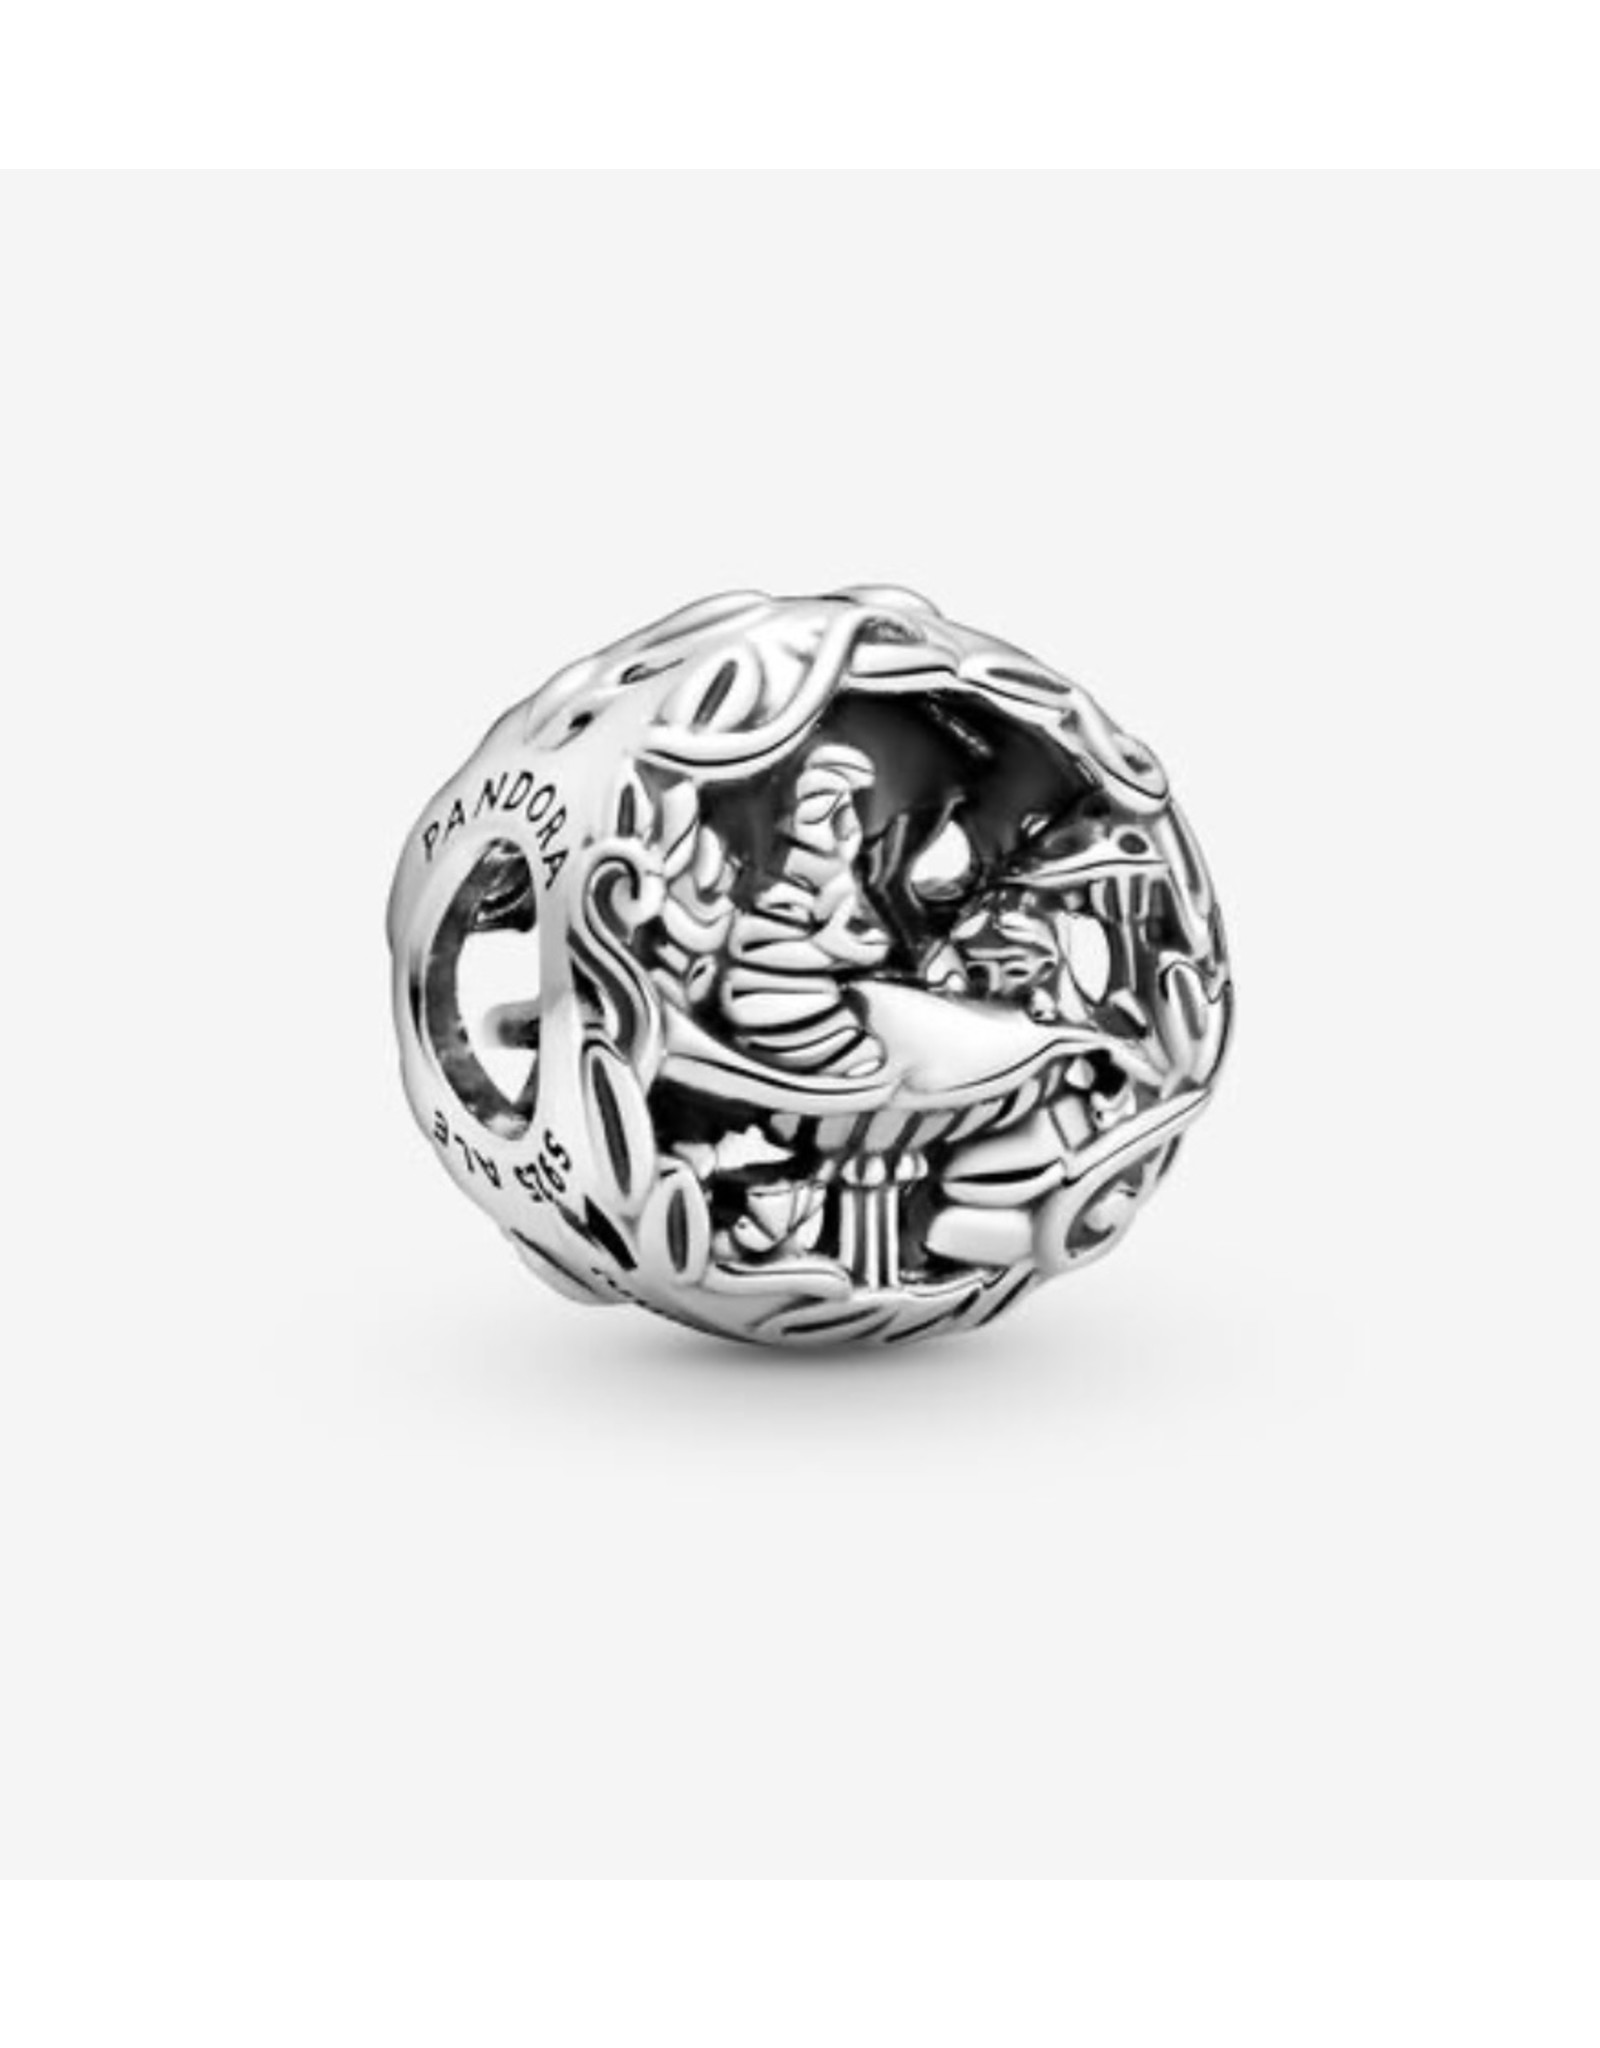 Pandora Pandora Charm,799361C00, Disney Alice In Wonderland, Cheshire Cat & Absolen Caterpillar